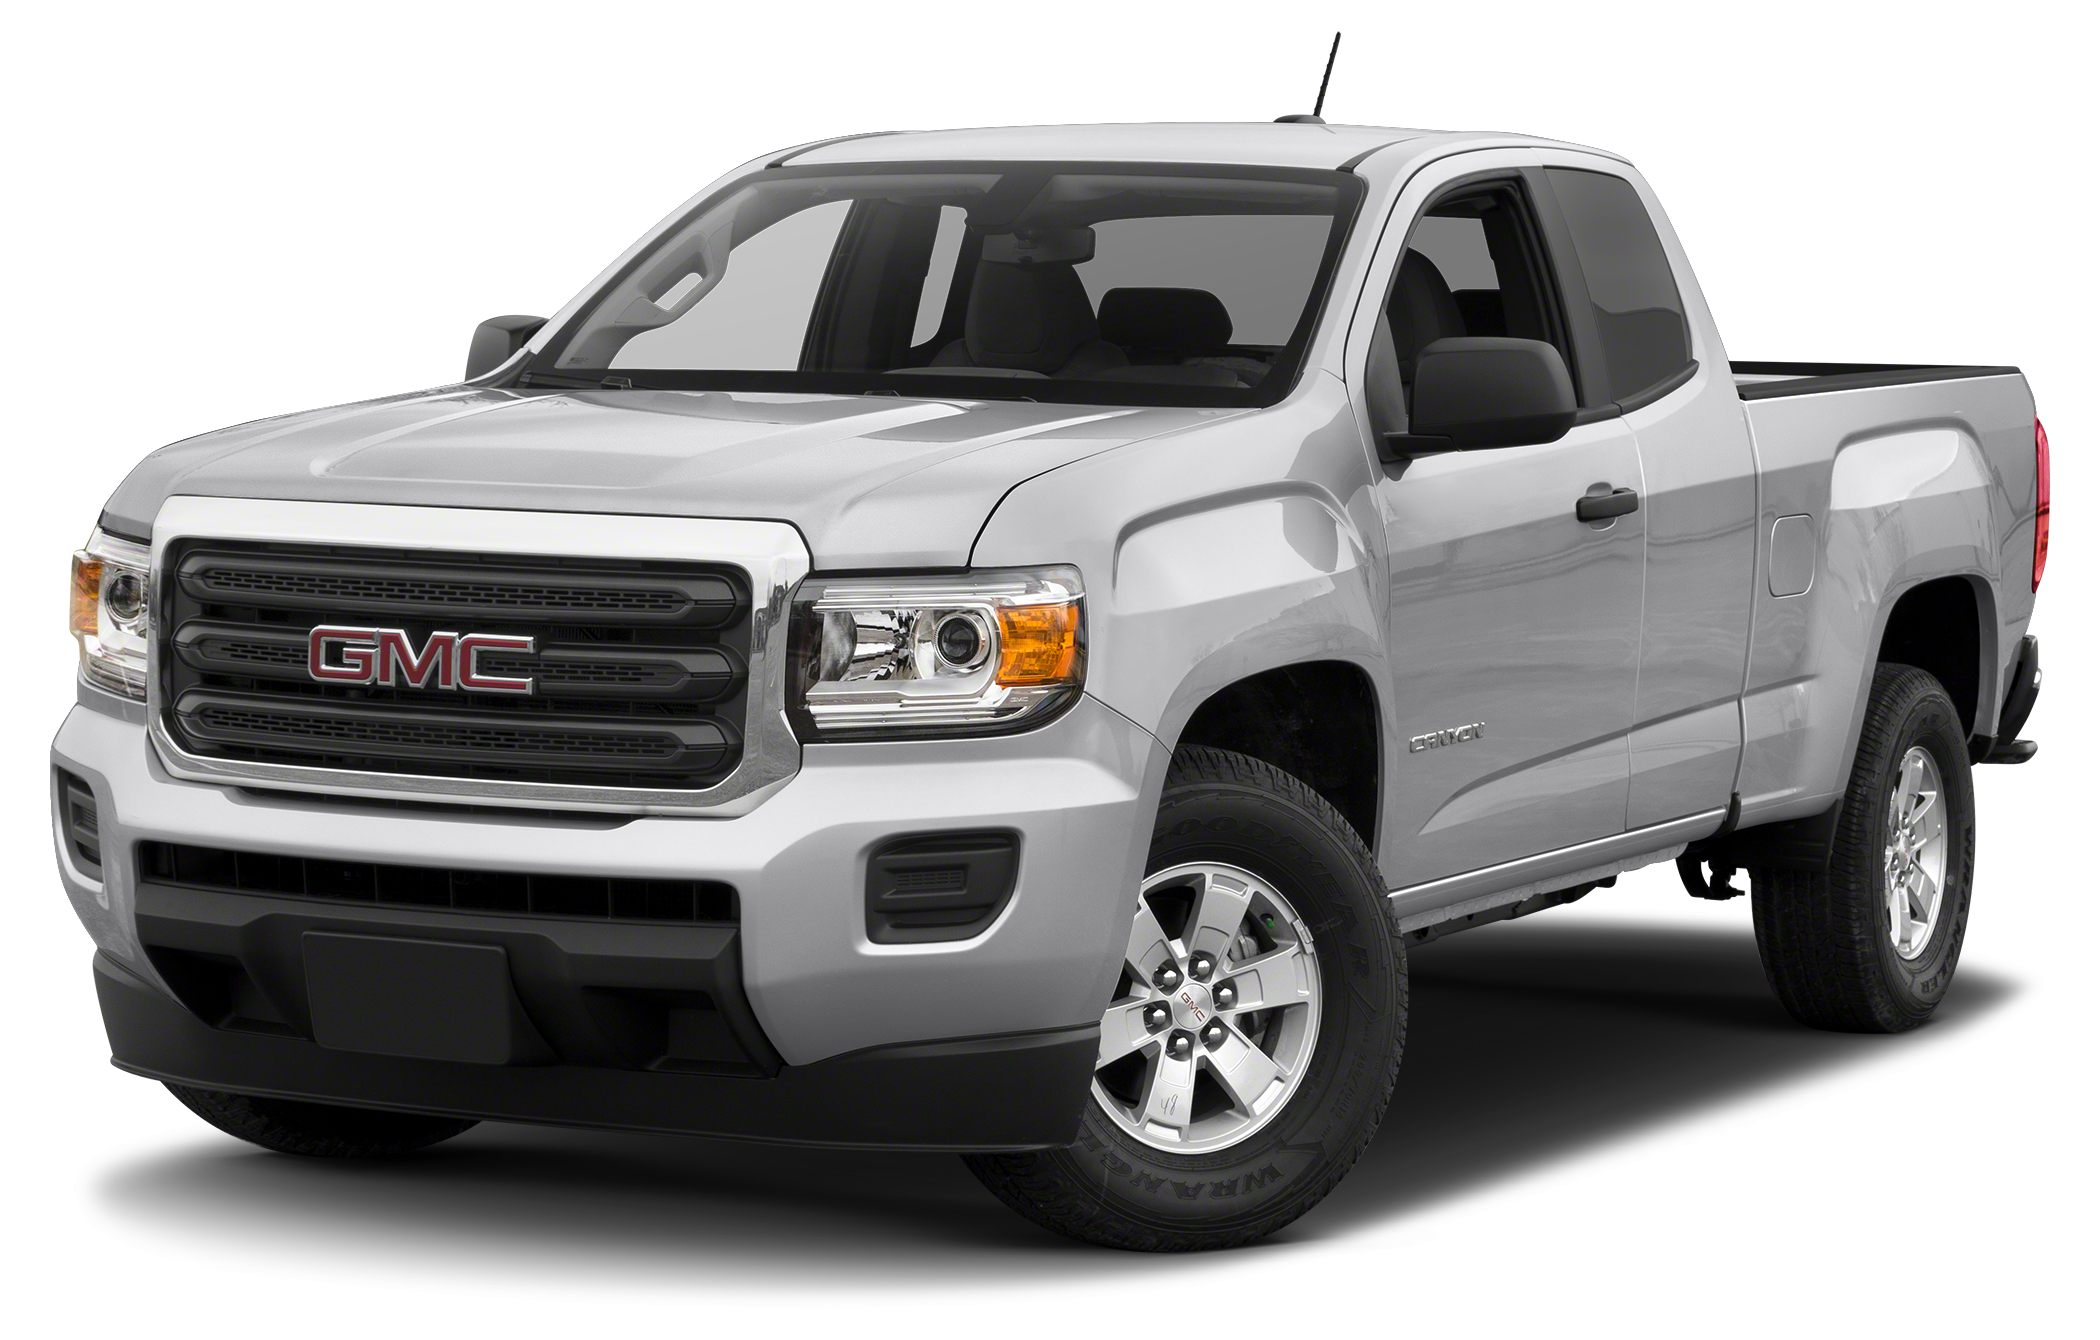 2017 GMC Canyon Base This 2017 GMC Canyon is complete with top-features such as a backup camera b